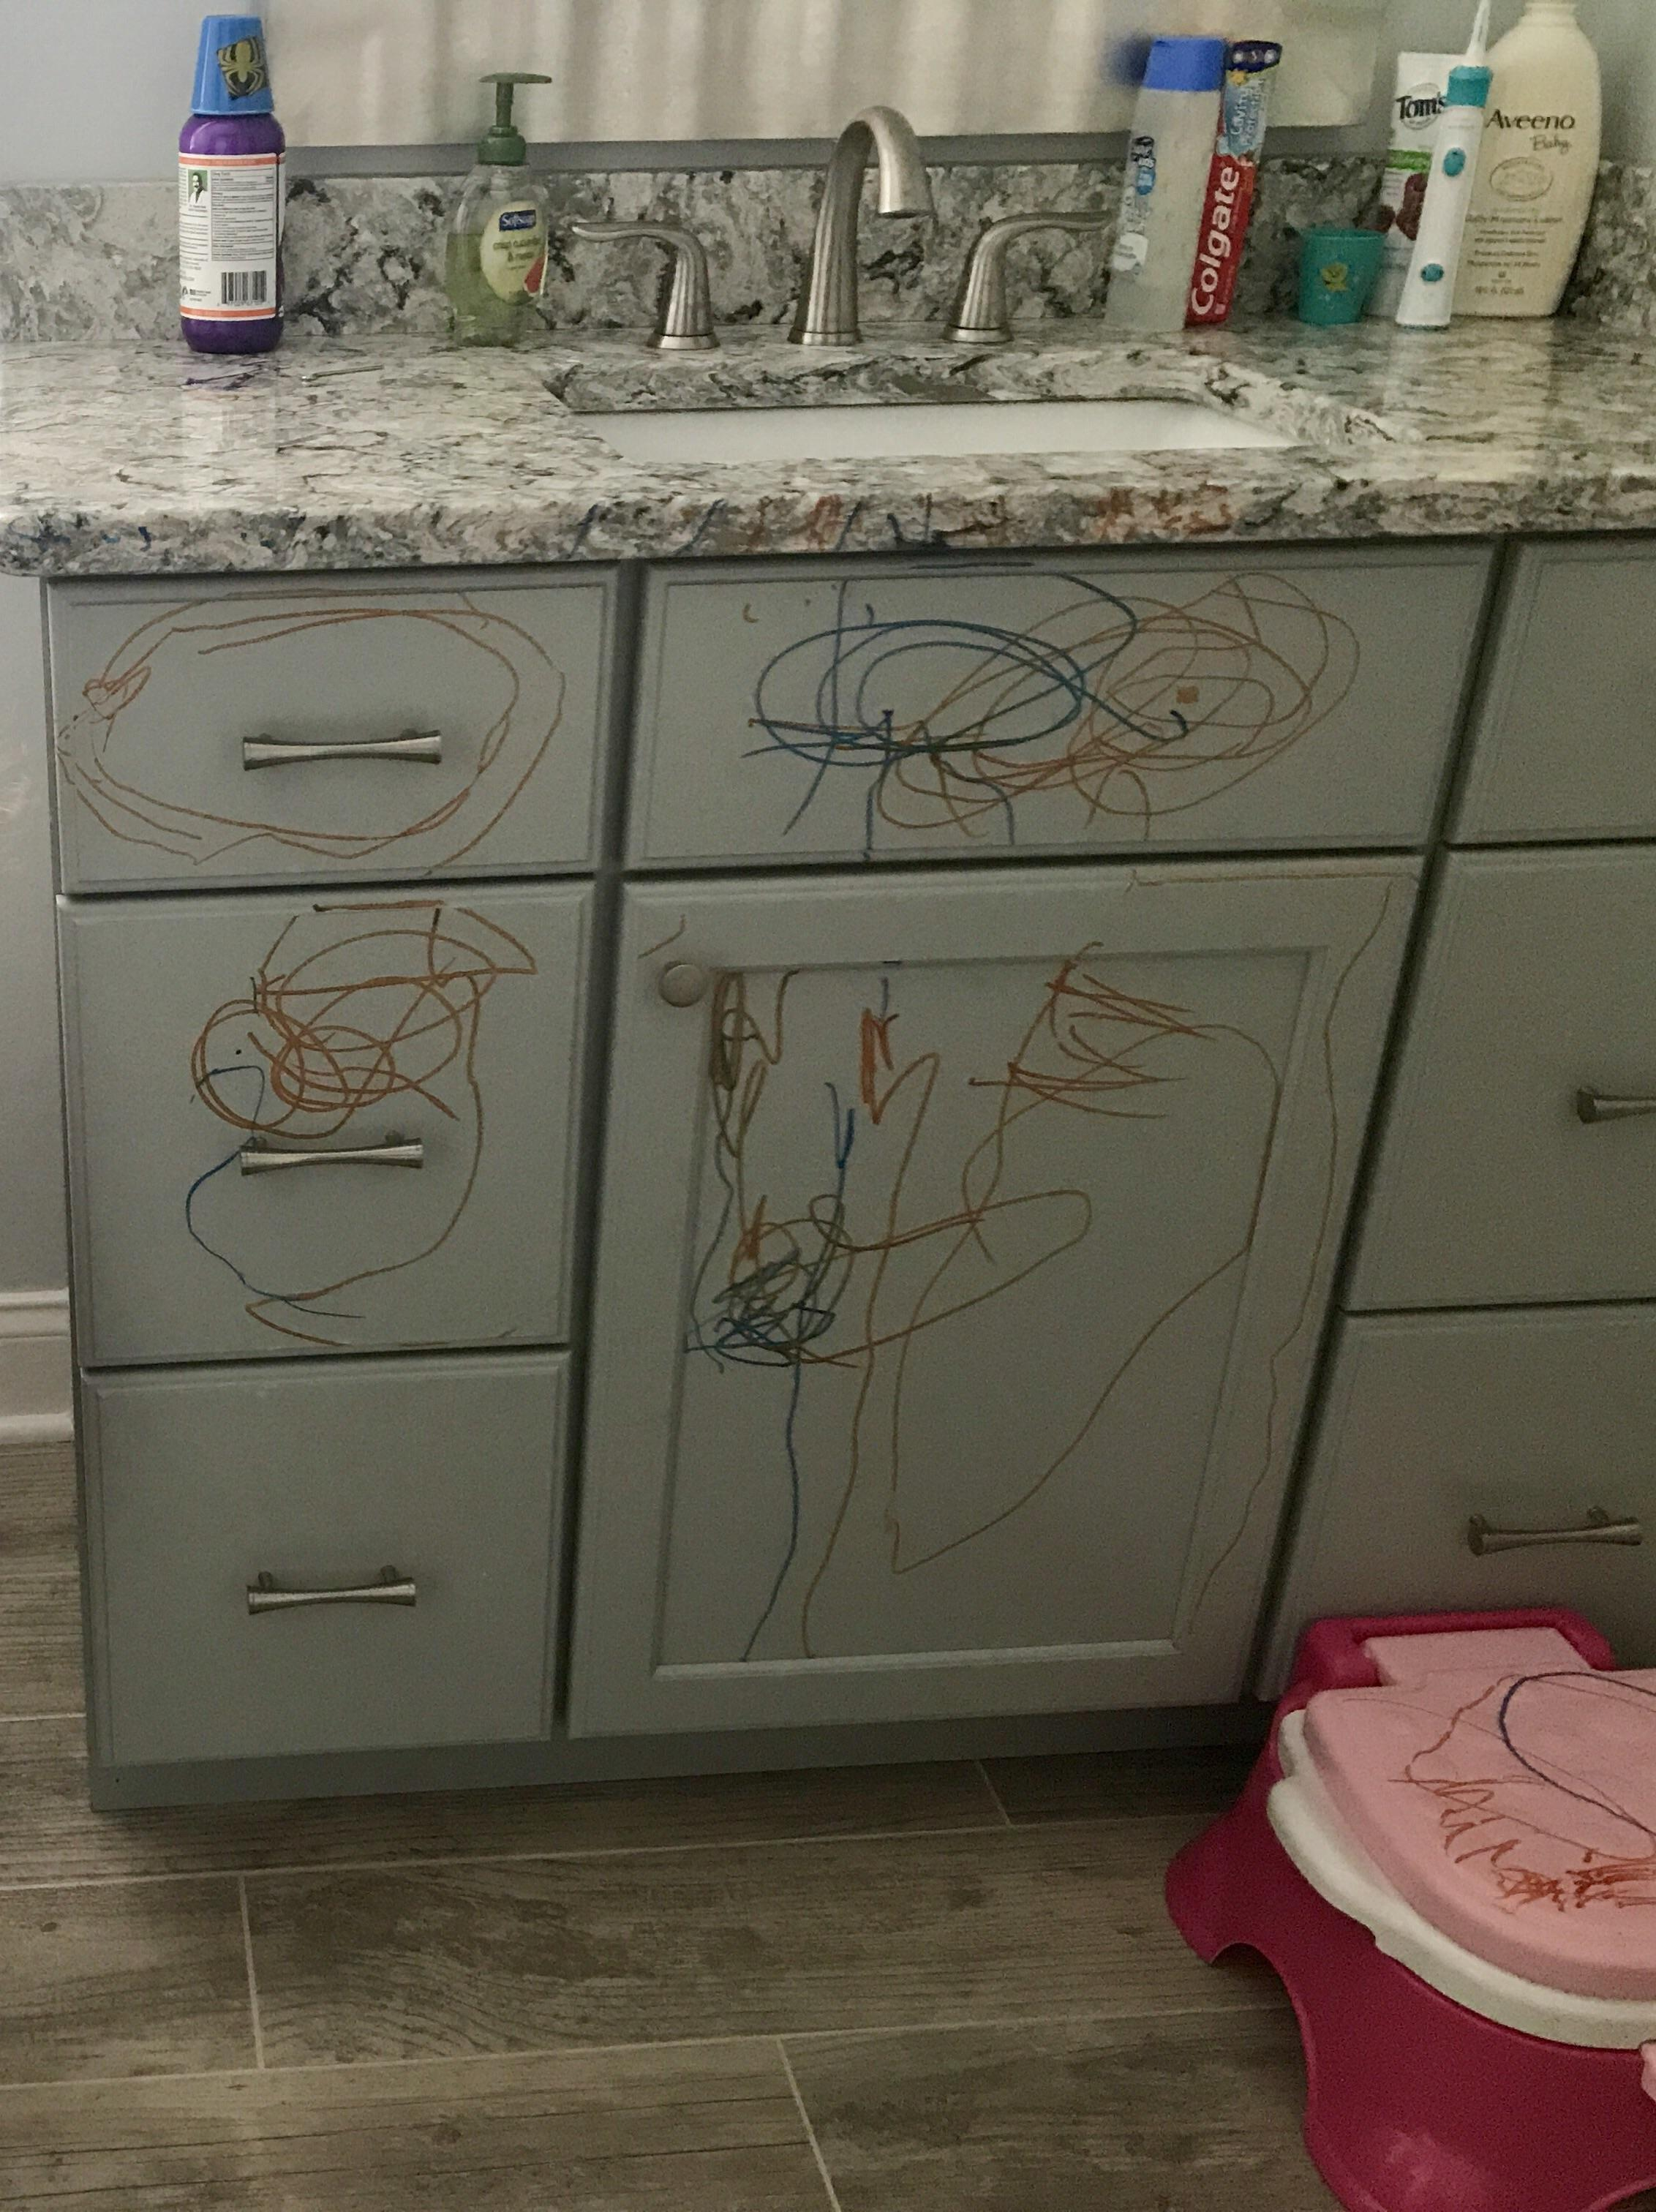 How To Remove Sharpie From Countertop As I Took The Sharpie From My Daughter I Muttered Words I Had